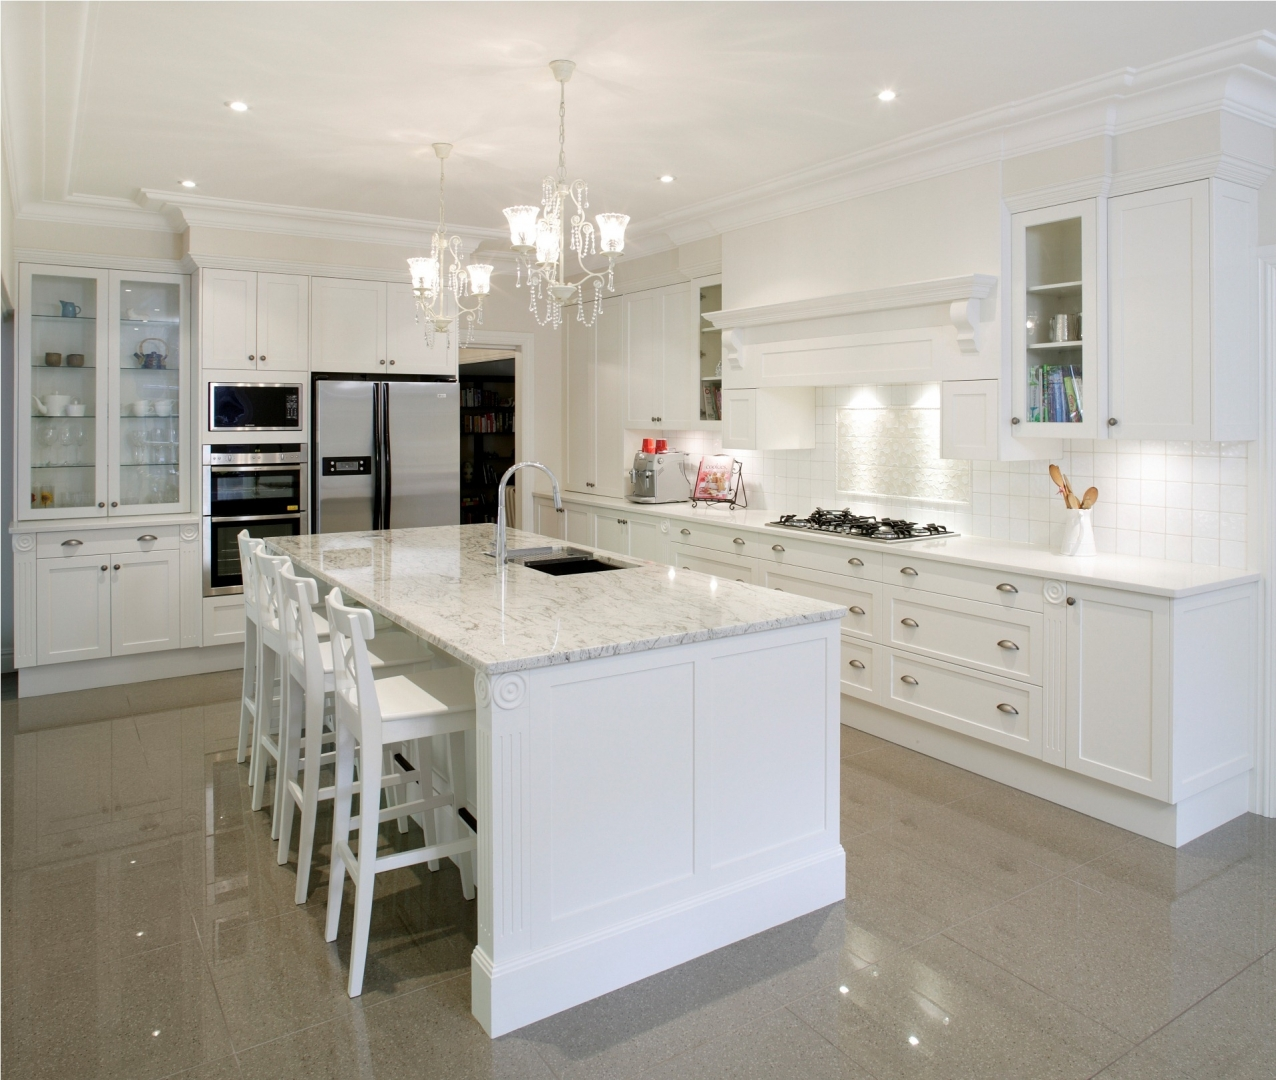 All White Kitchens: Is This Trend Here to Stay? - Modernize